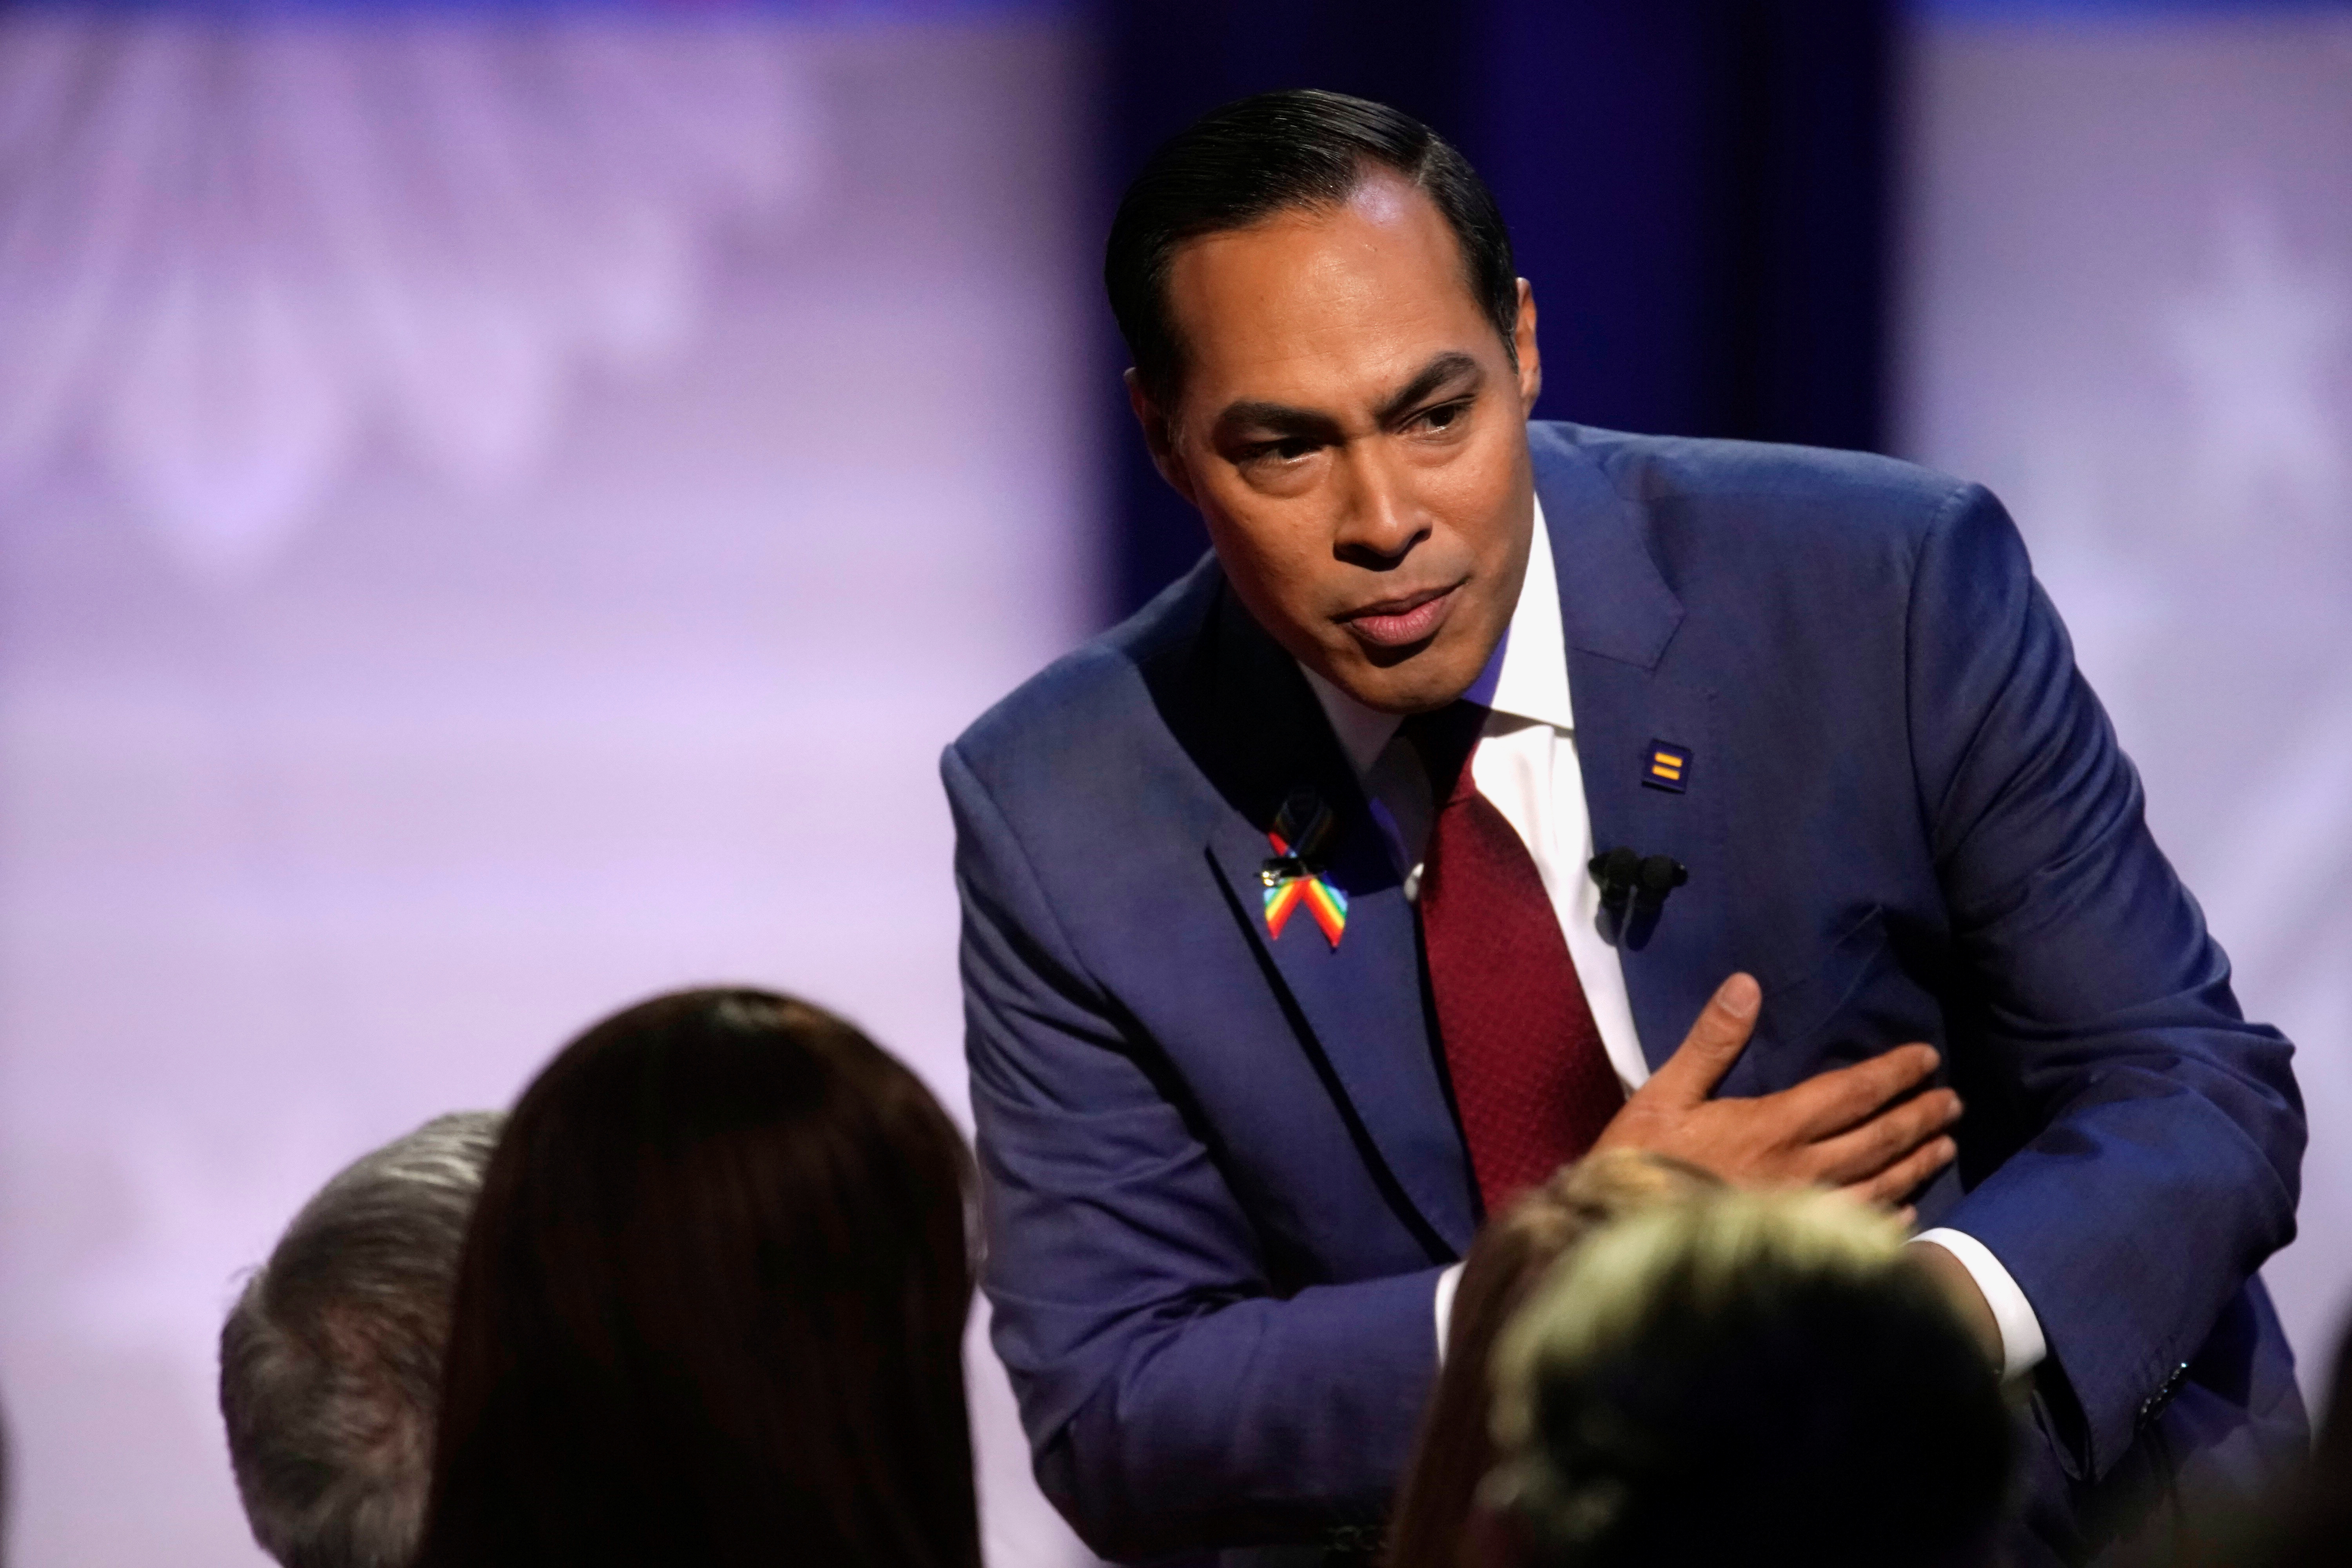 Democratic 2020 U.S. presidential candidate Julian Castro gestures during a televised townhall on CNN dedicated to LGBTQ issues in Los Angeles, California